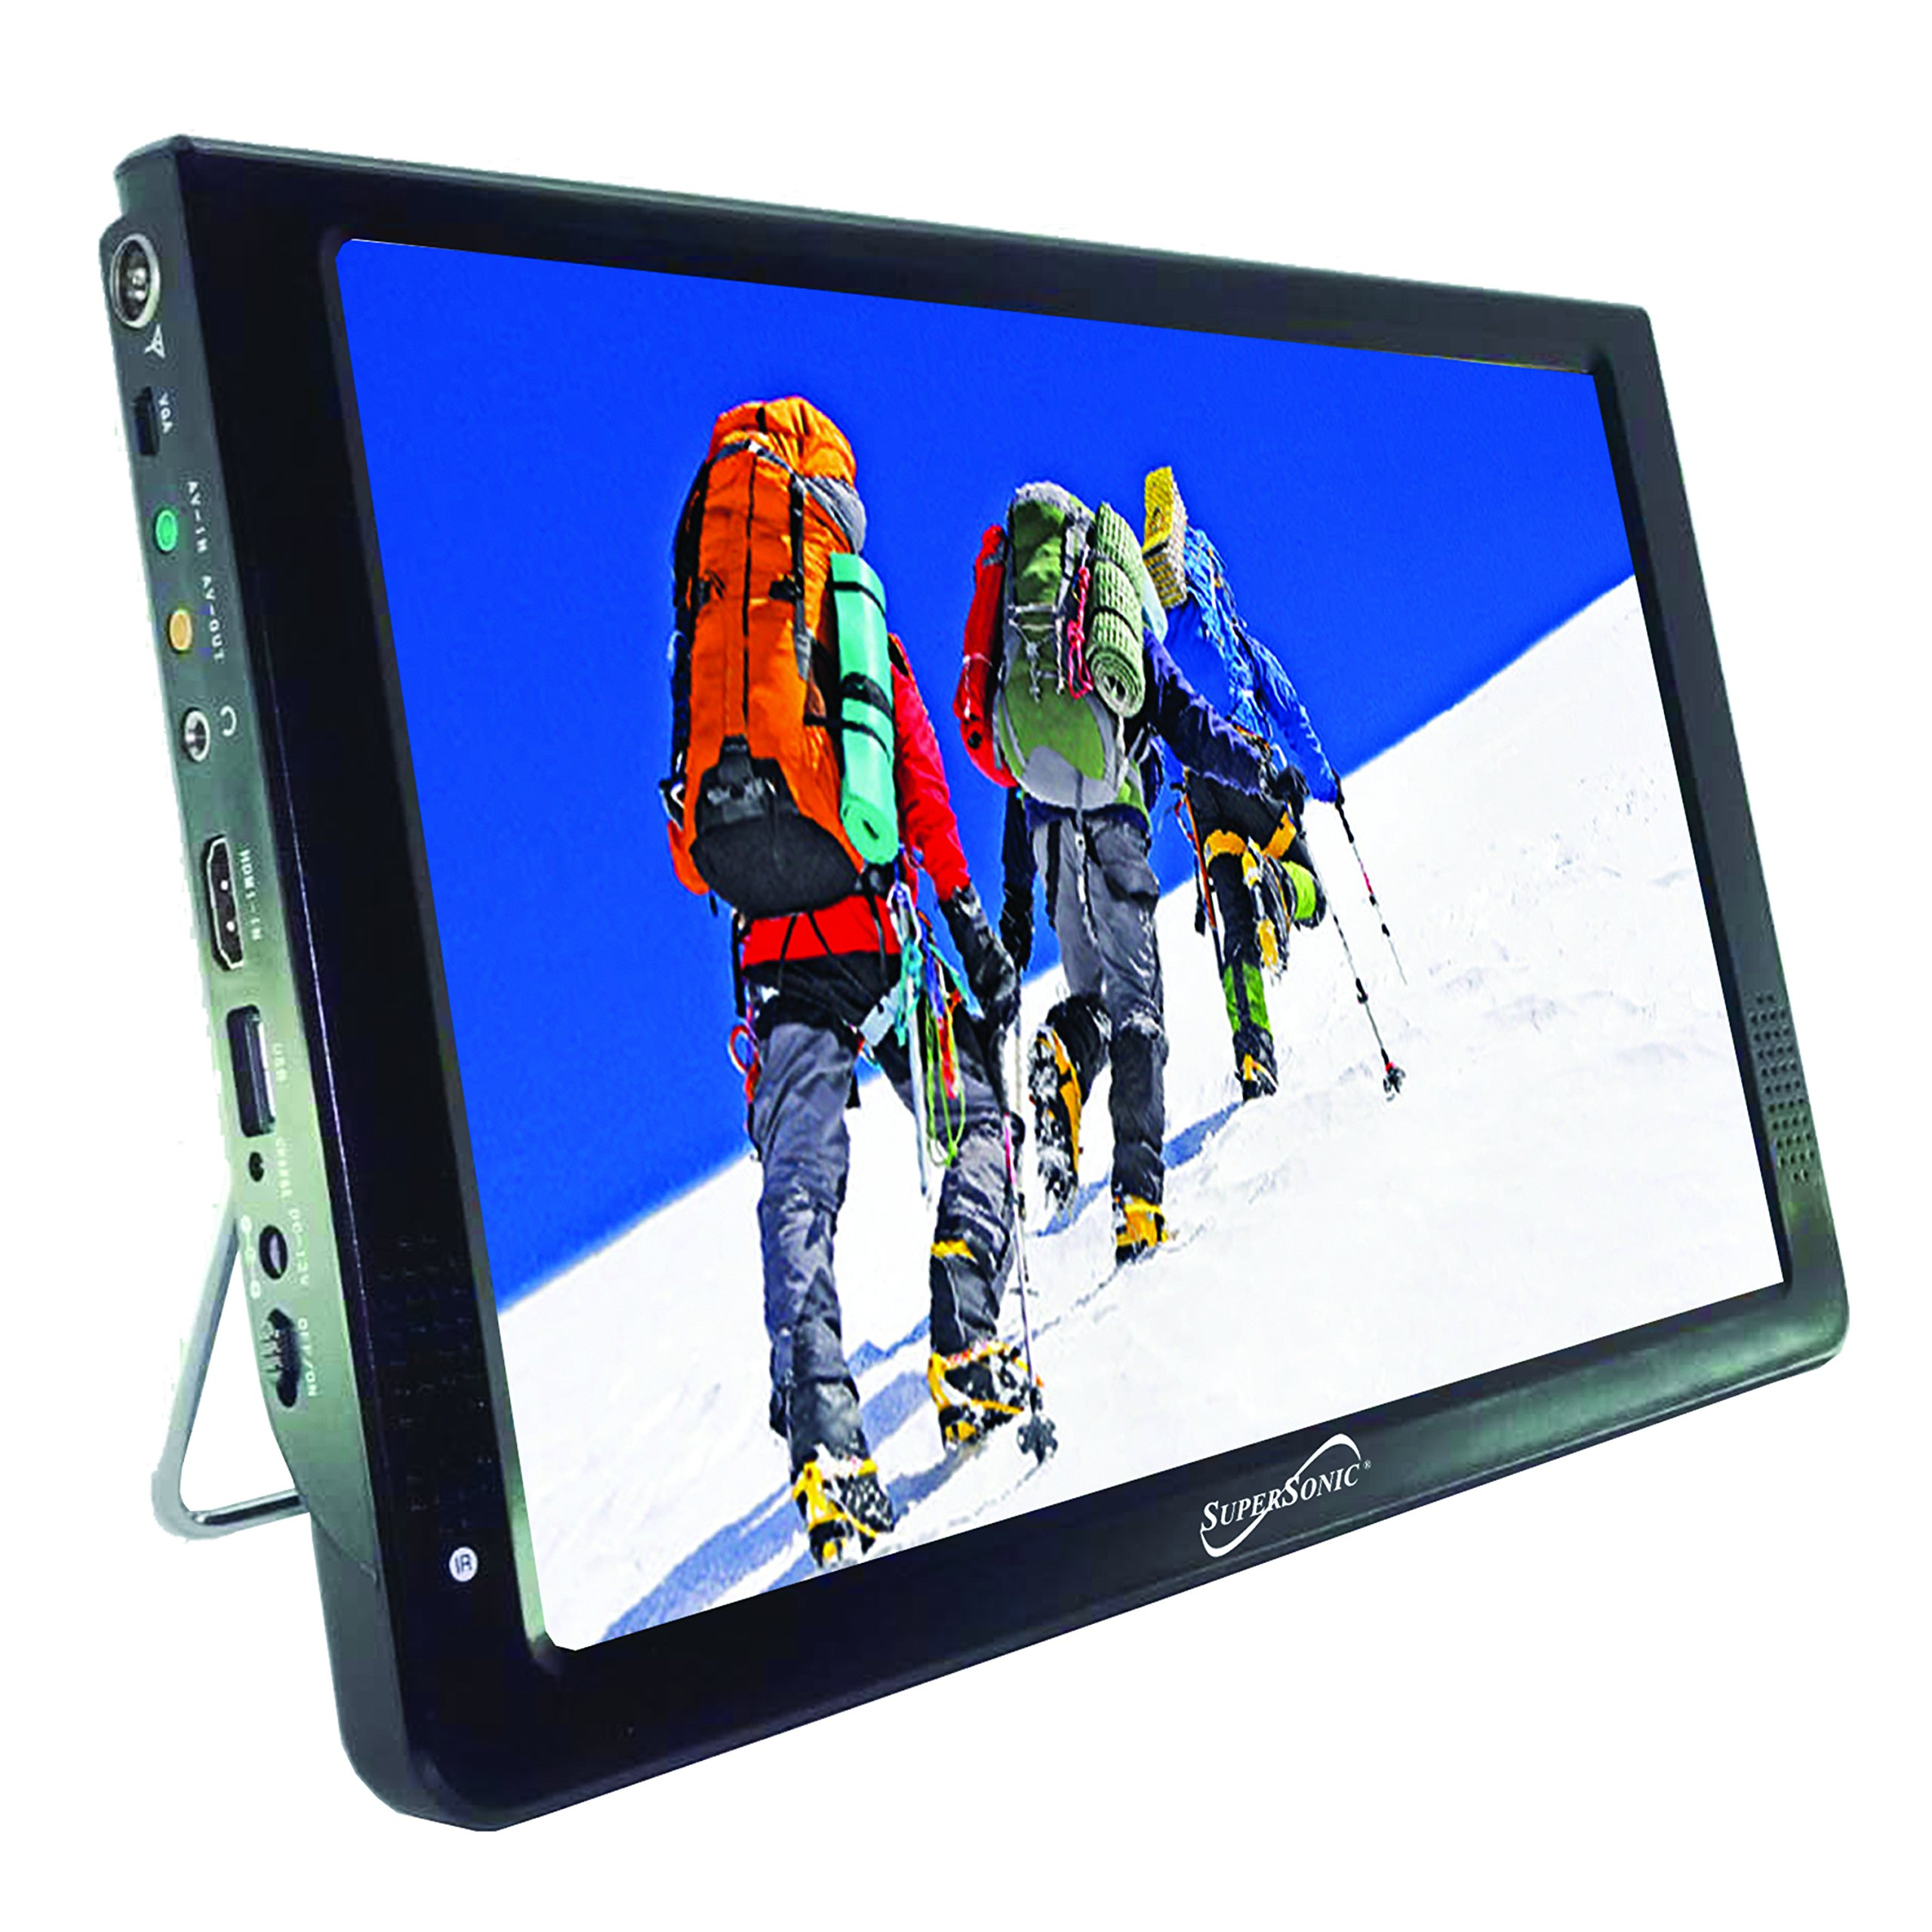 SuperSonic SC-2812 Portable Digital LED TV 12'' with USB, SD Reader, HDMI, and AC/DC Input: Built-in Lithium Ion Battery, AUX Input and Speakers